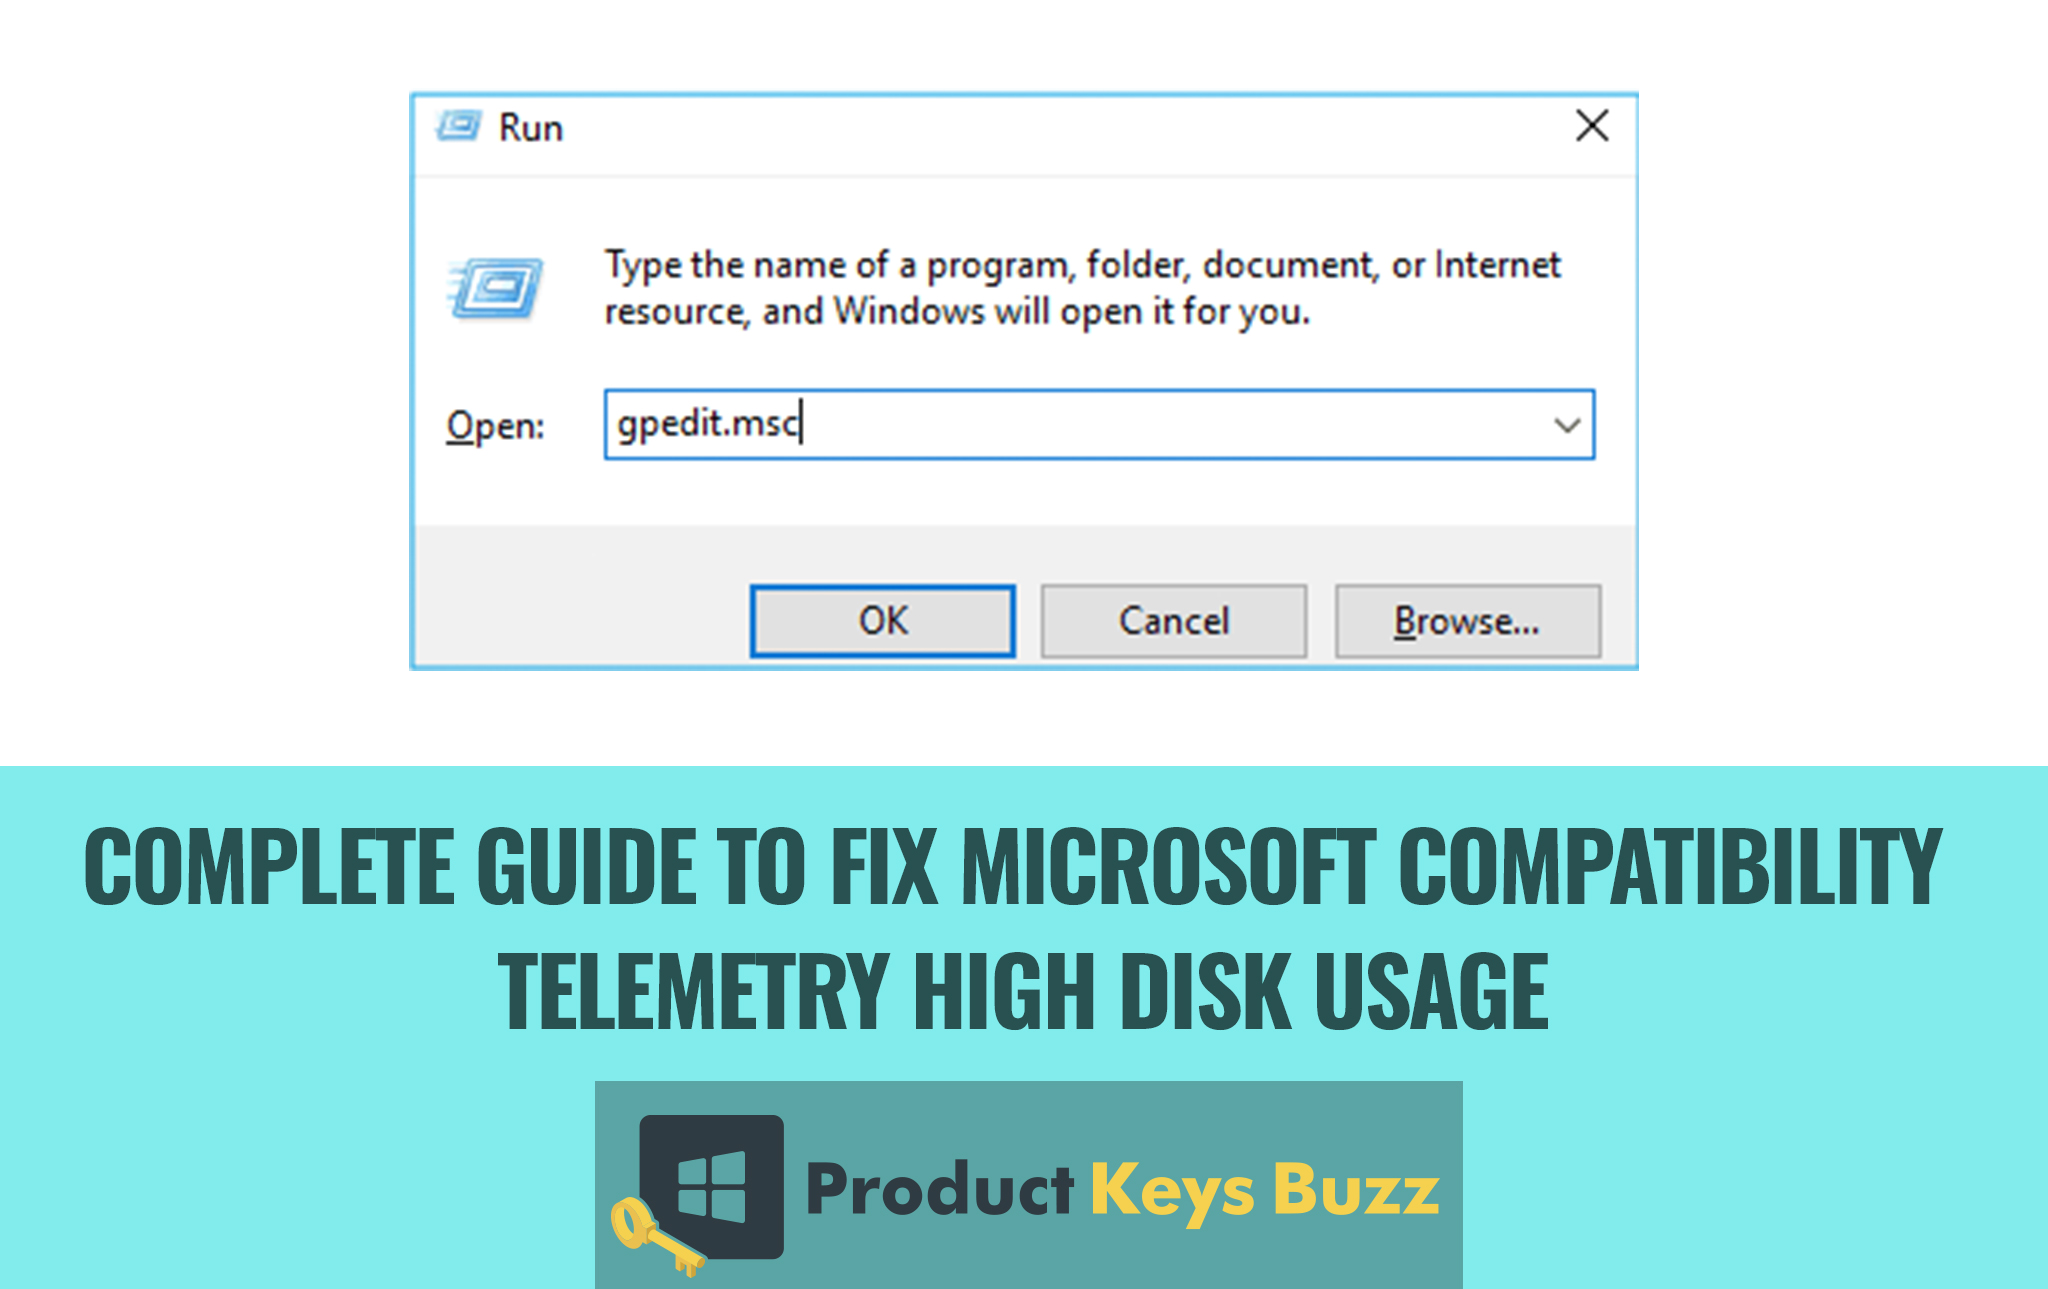 Fix Microsoft Compatibility Telemetry High Disk Usage